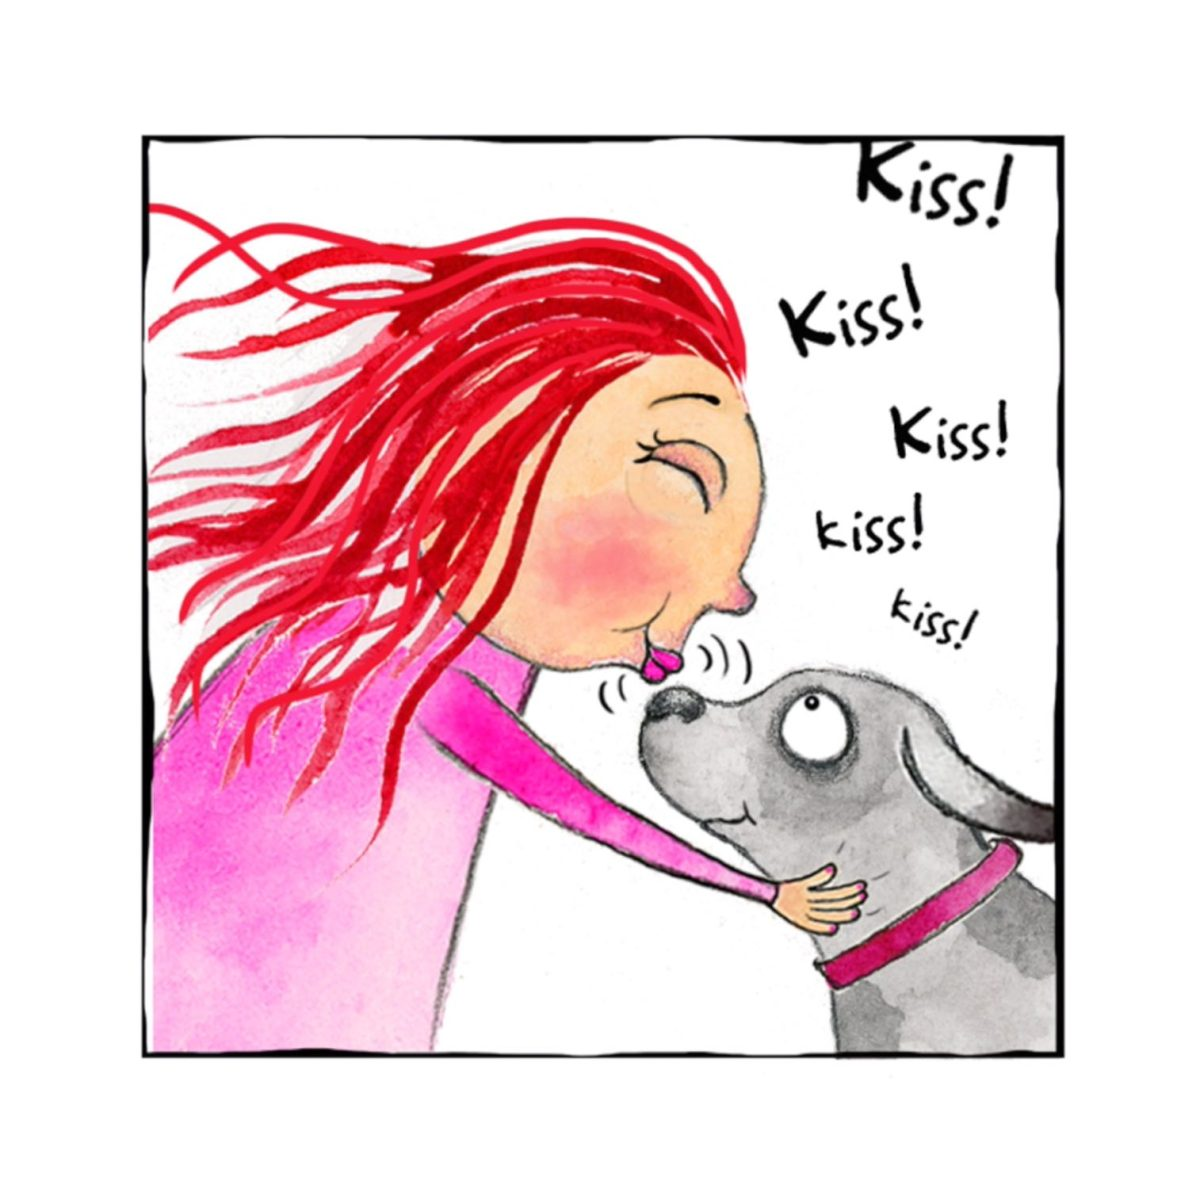 More Kisses